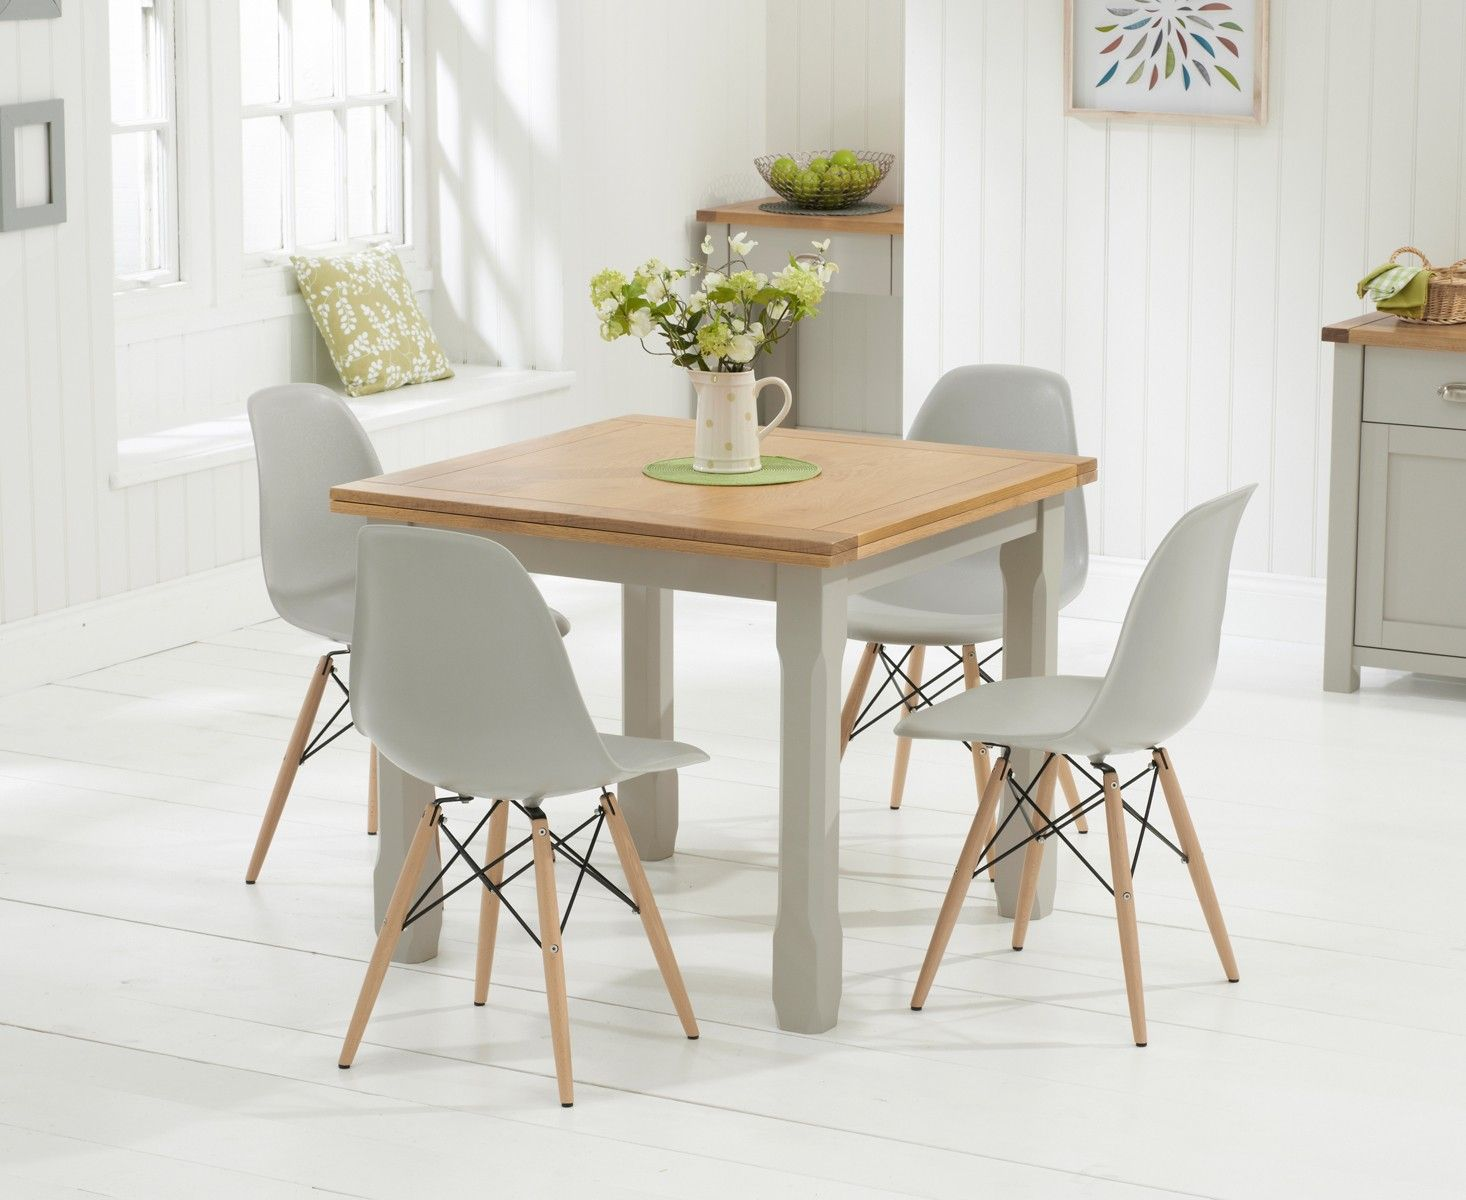 Eames Style Dining Table And Chairs Somerset 90cm Oak And Grey Flip Top Extending Dining Table